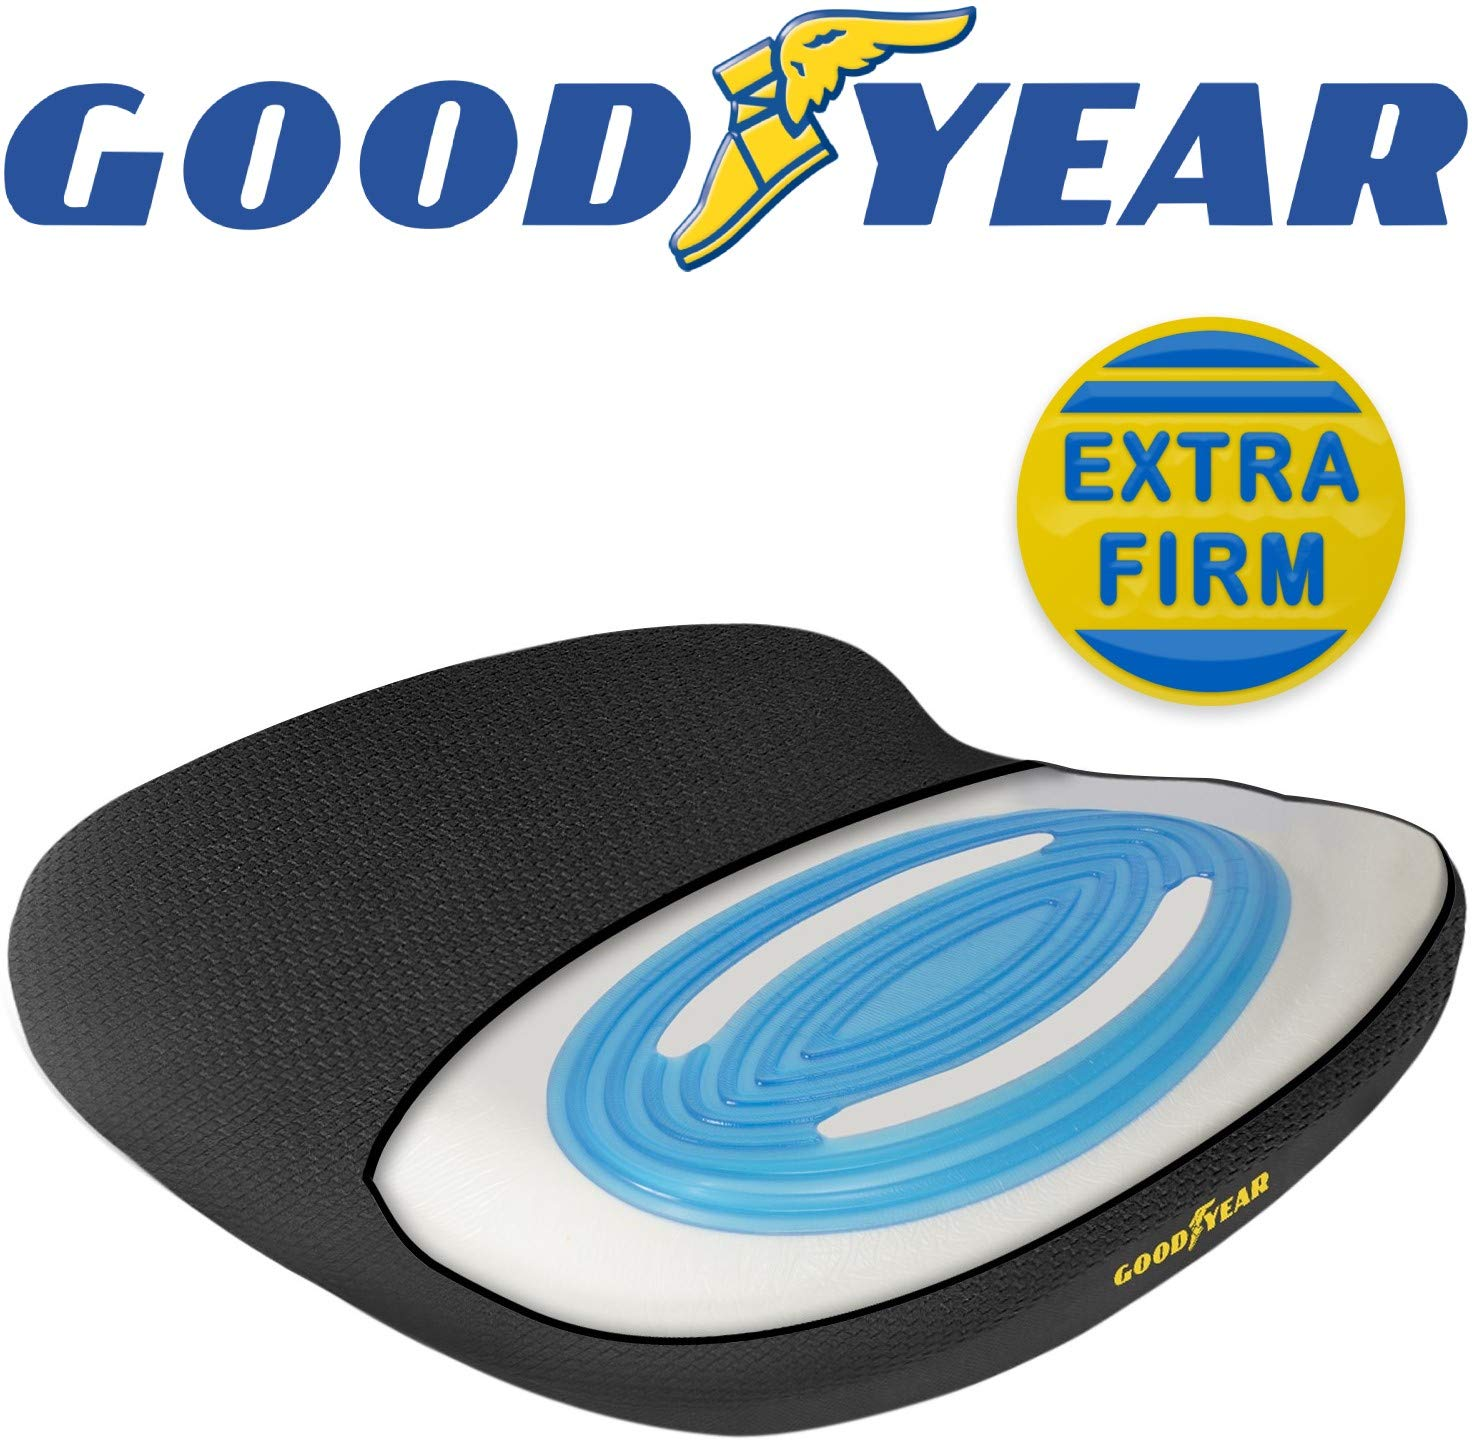 Goodyear GY1143  Extra Firm Seat Cushion for Office, Car, SUV  Memory Foam with Cooling Gel [The Effect is Subjective, and Varies by Personal Sensitivity]  Non-Slip Bottom